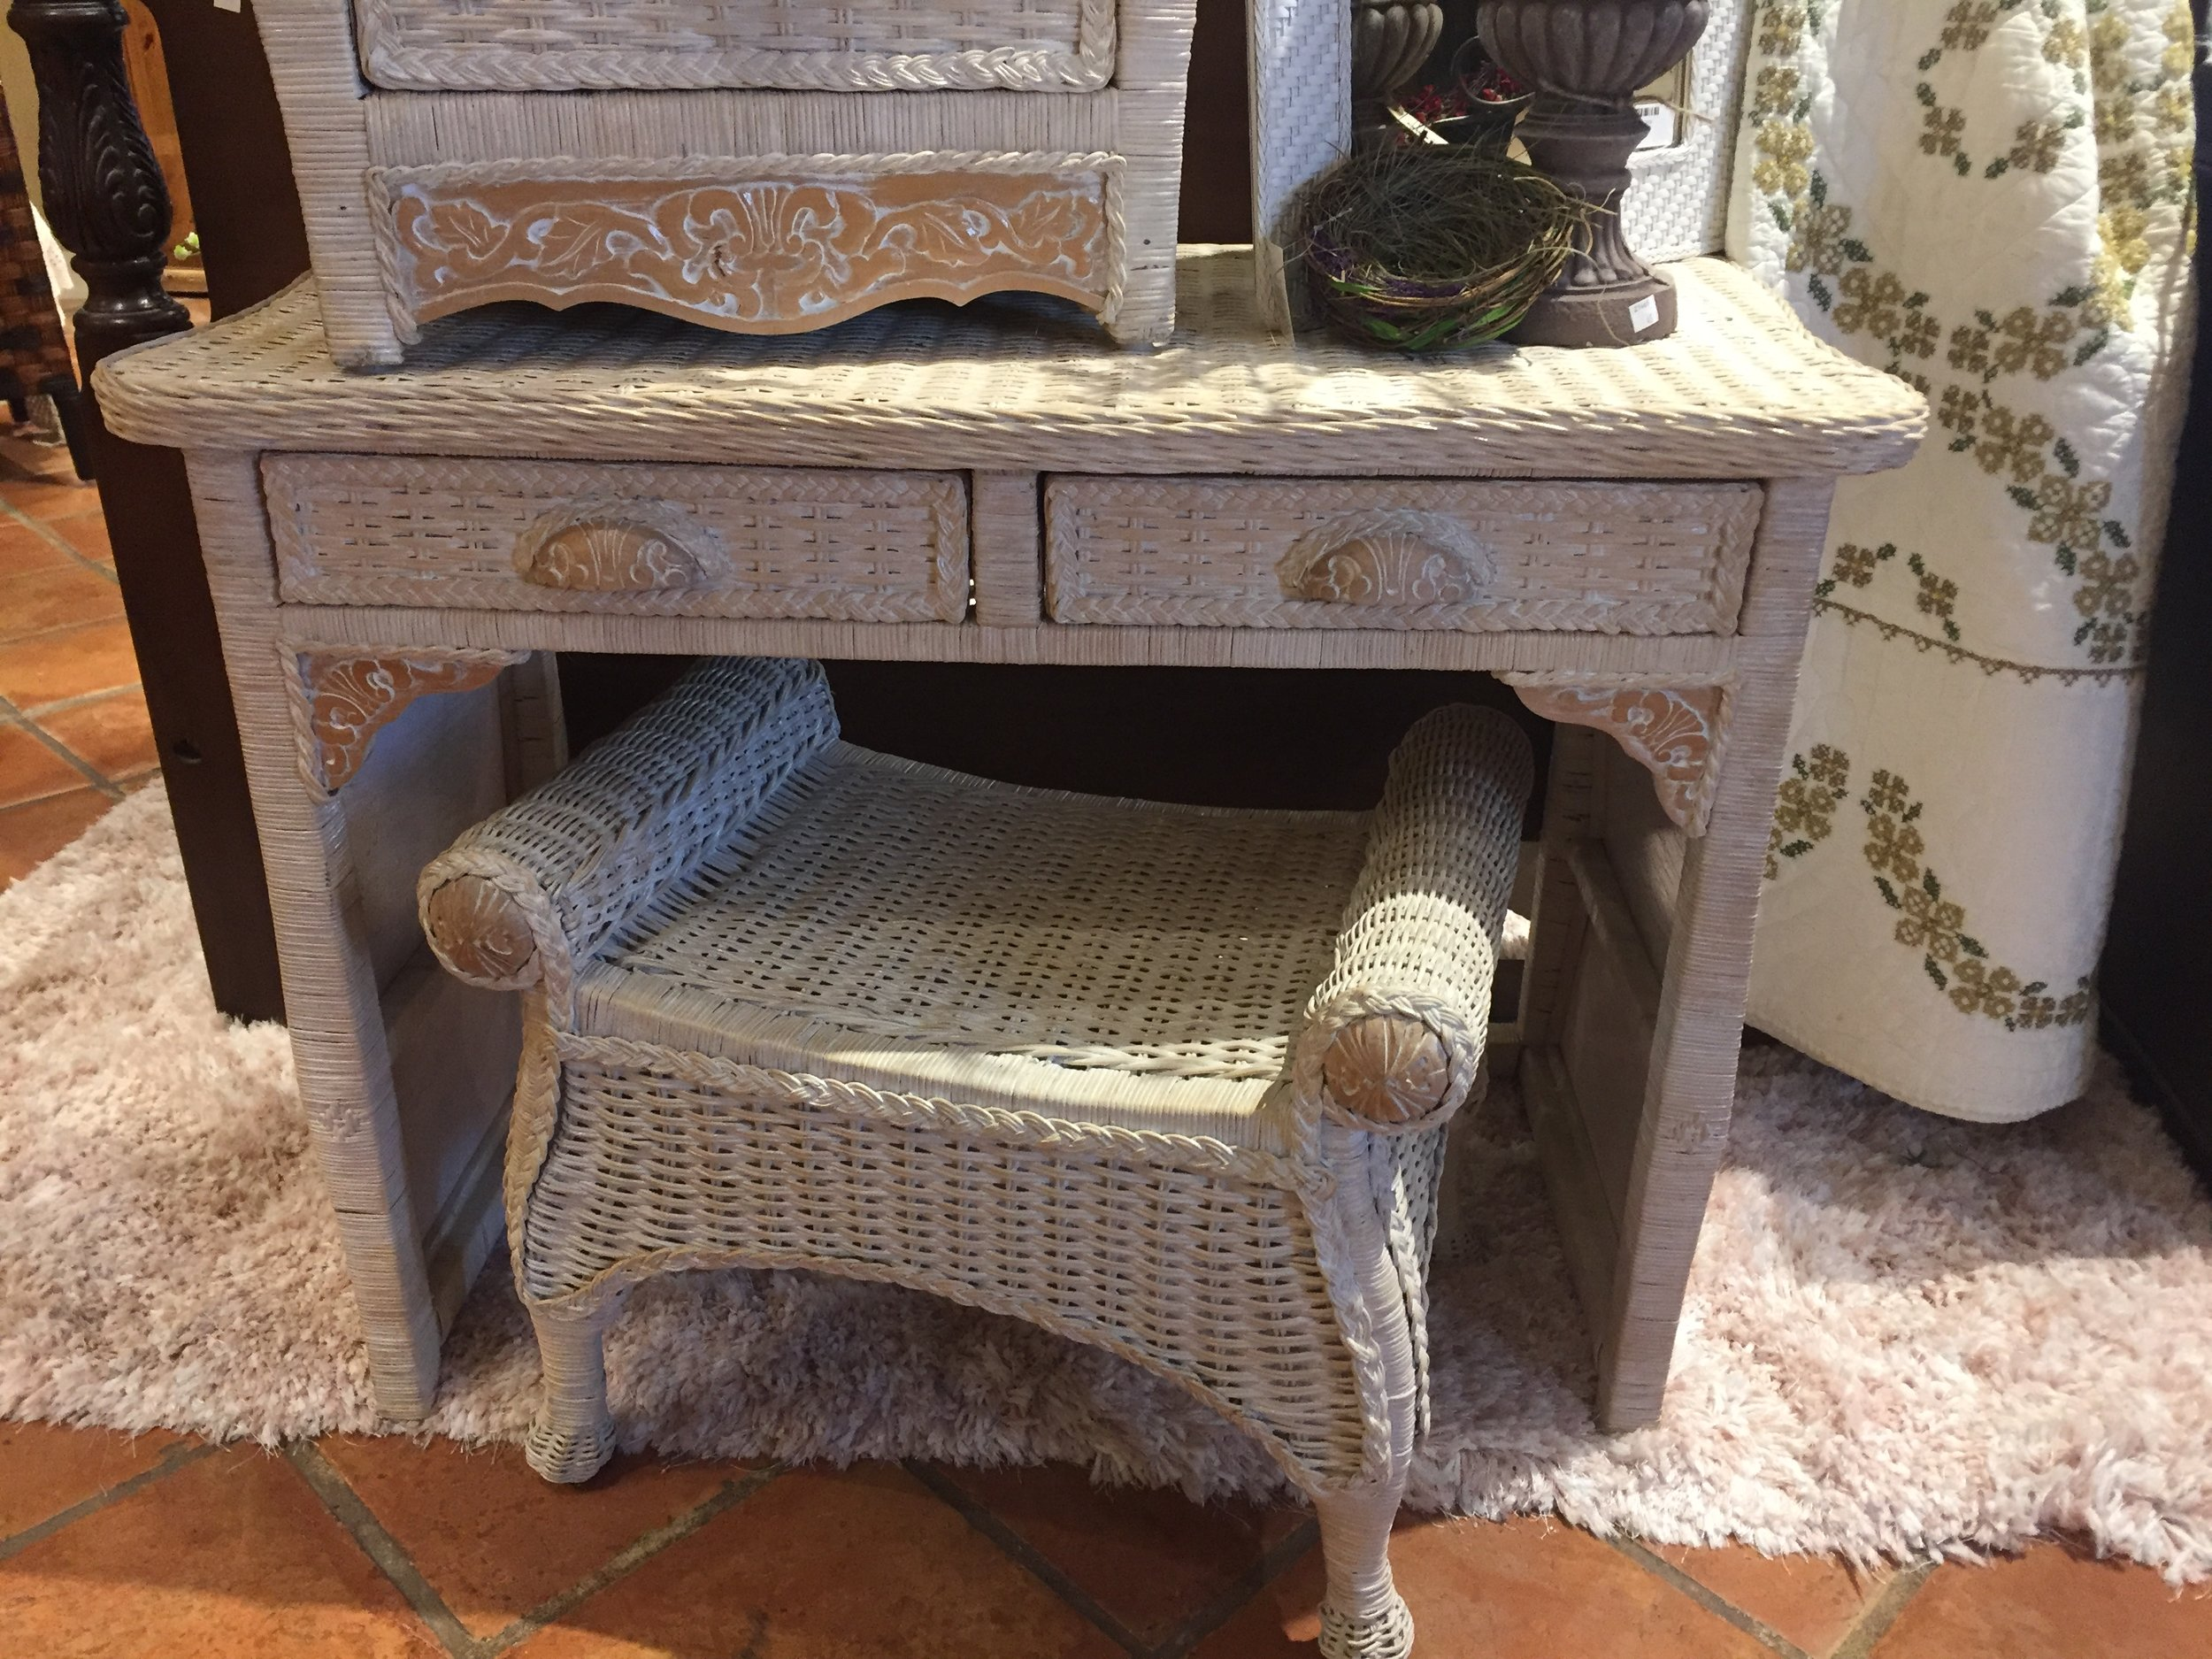 SOLD! Wicker Vanity and Stool $149.95 - C0893 16697